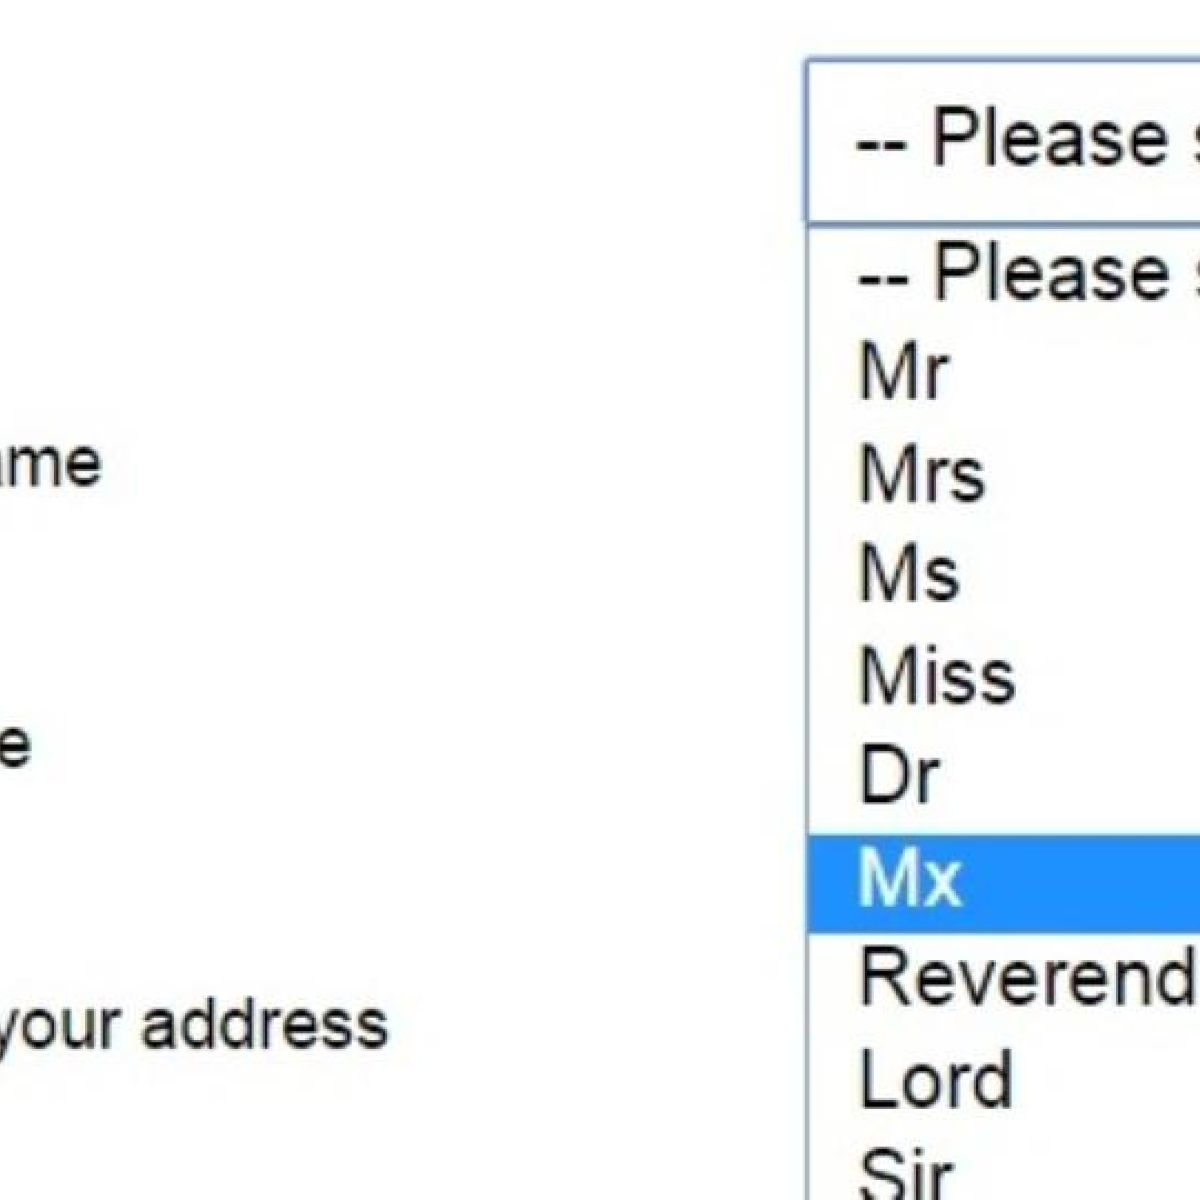 the question should we replace mr mrs and ms with the gender